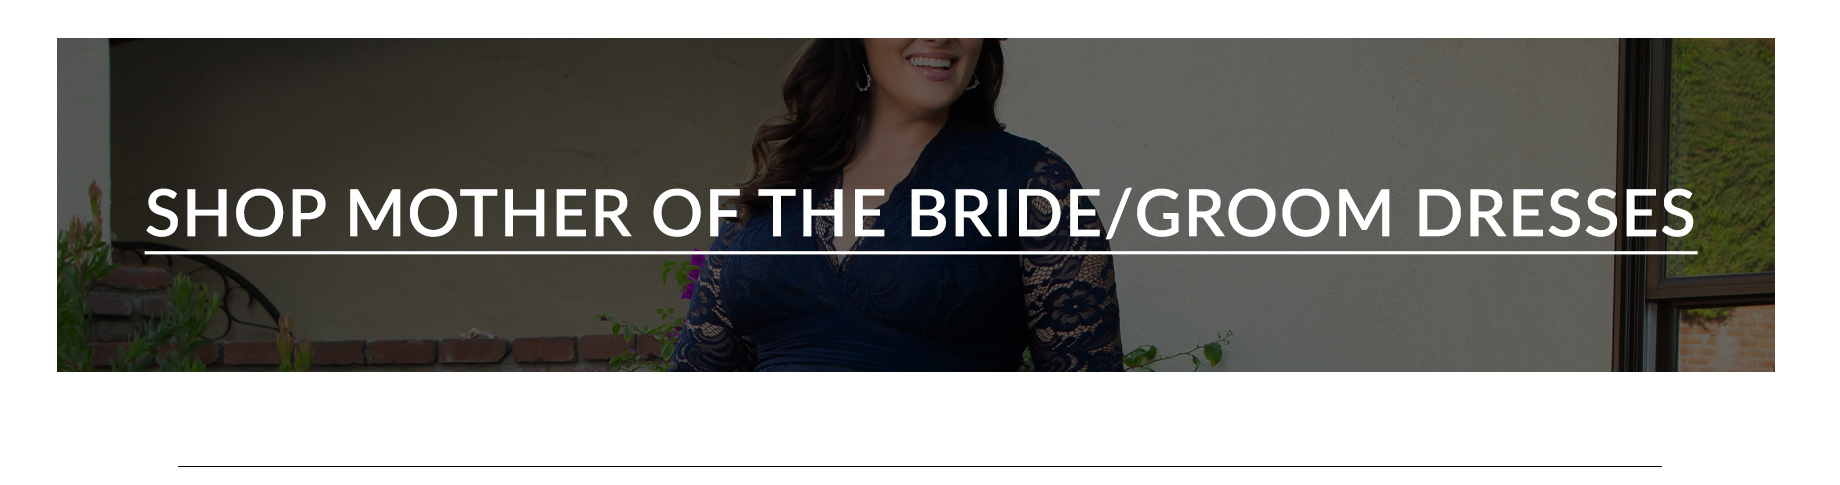 Shop Mother of the Bride or Groom